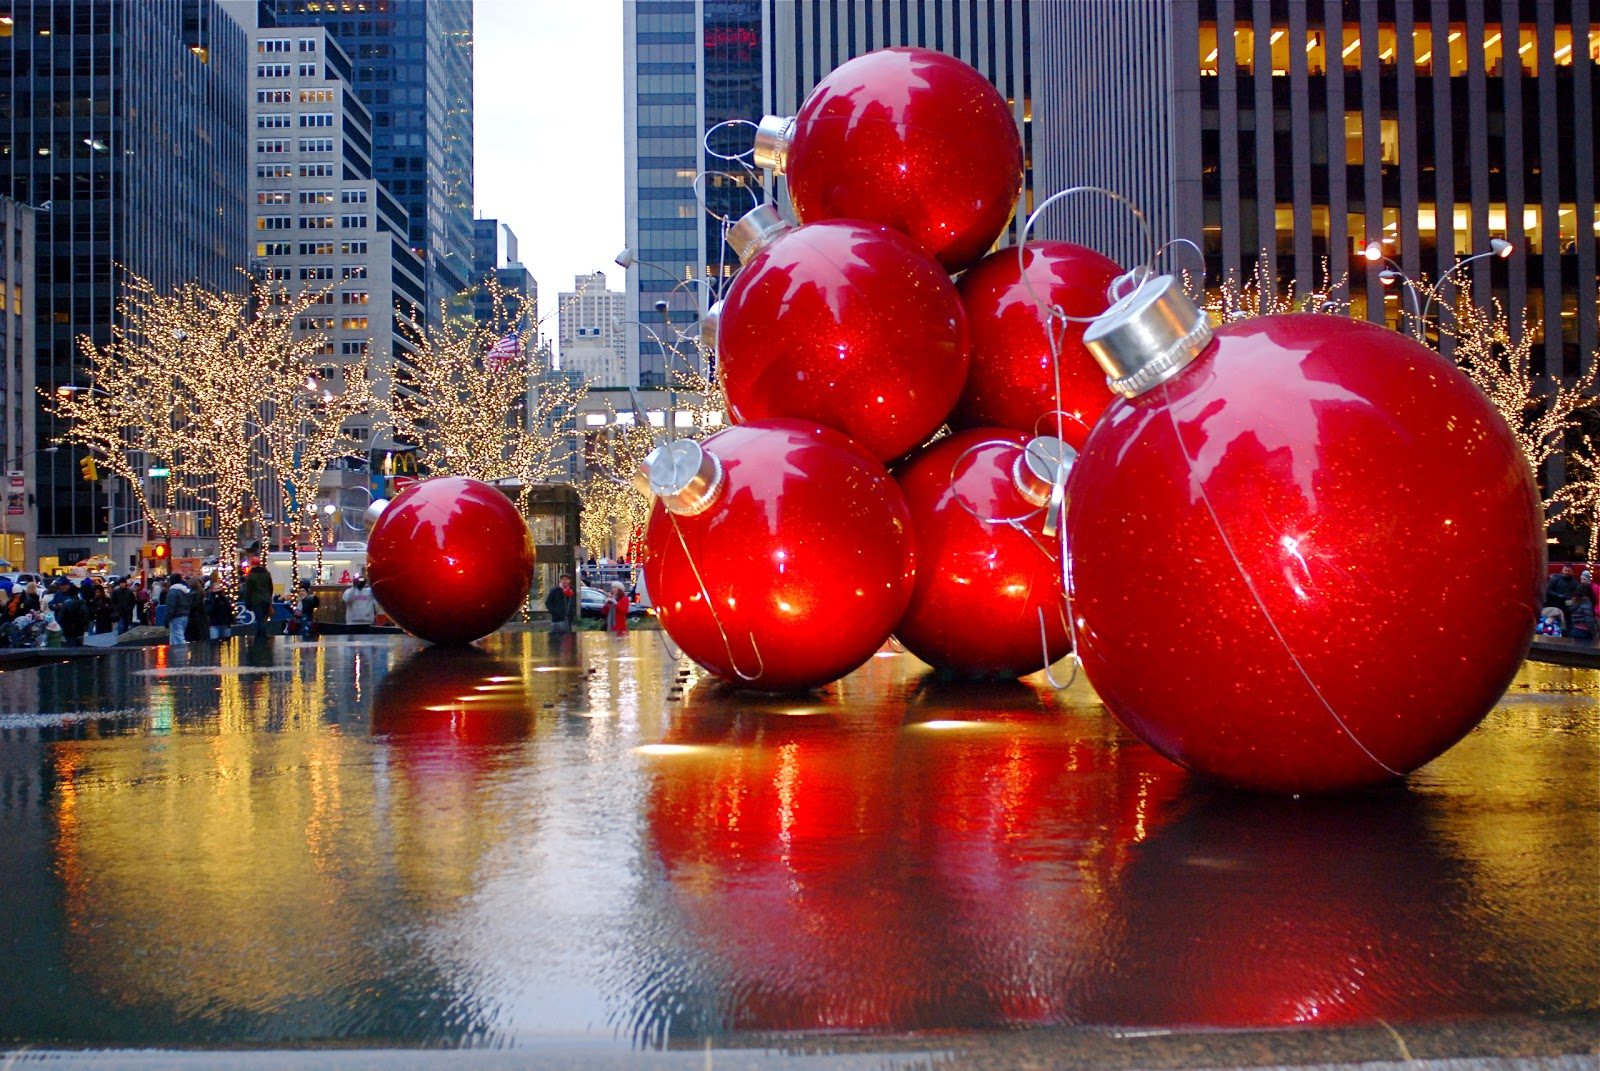 christmas holiday decorations on sixth avenue - Christmas Holiday Decorations